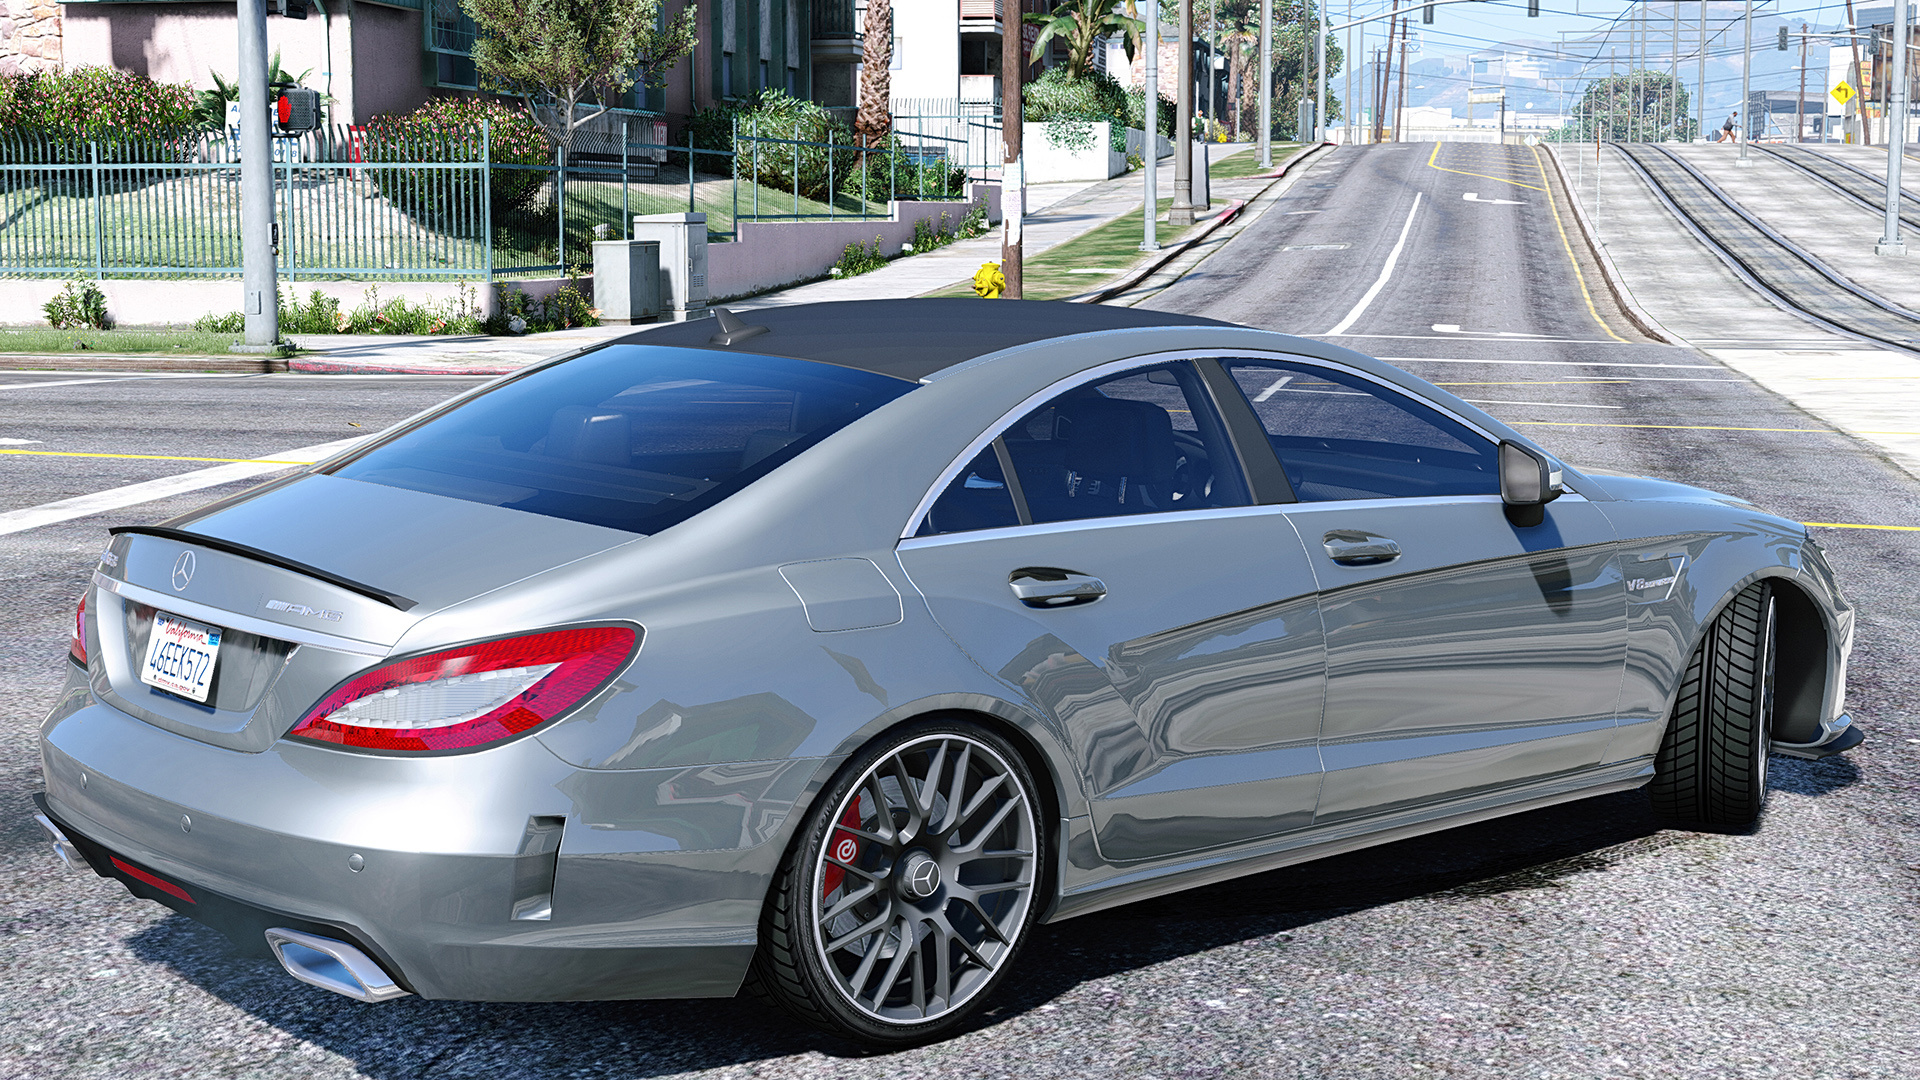 Mercedes benz cls 6 3 amg add on gta5 for Mercedes benz amg 6 3